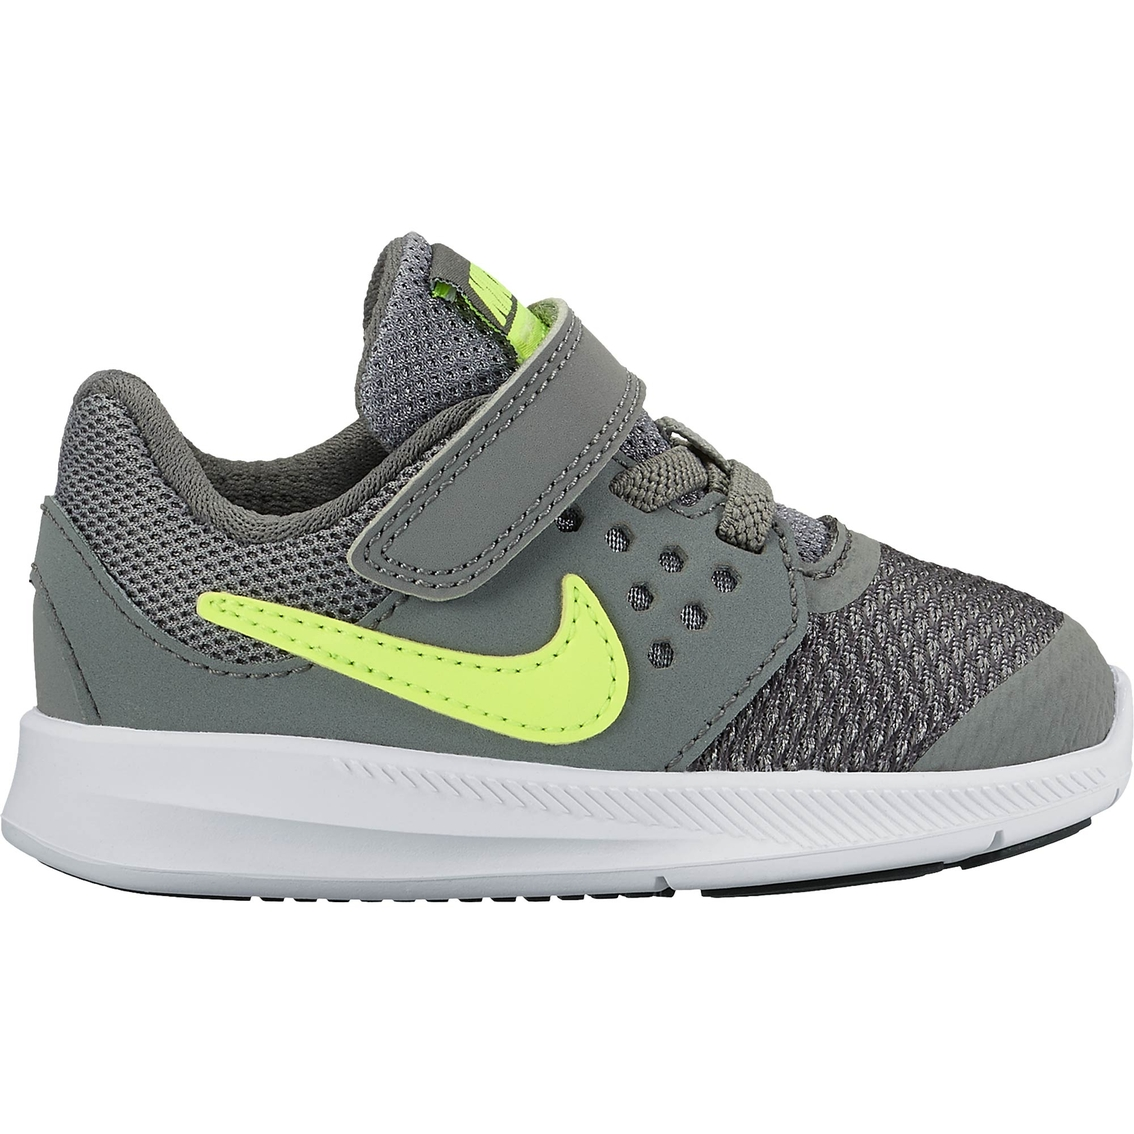 8b1a302911ca Nike Toddler Boys Downshifter 7 Running Shoes